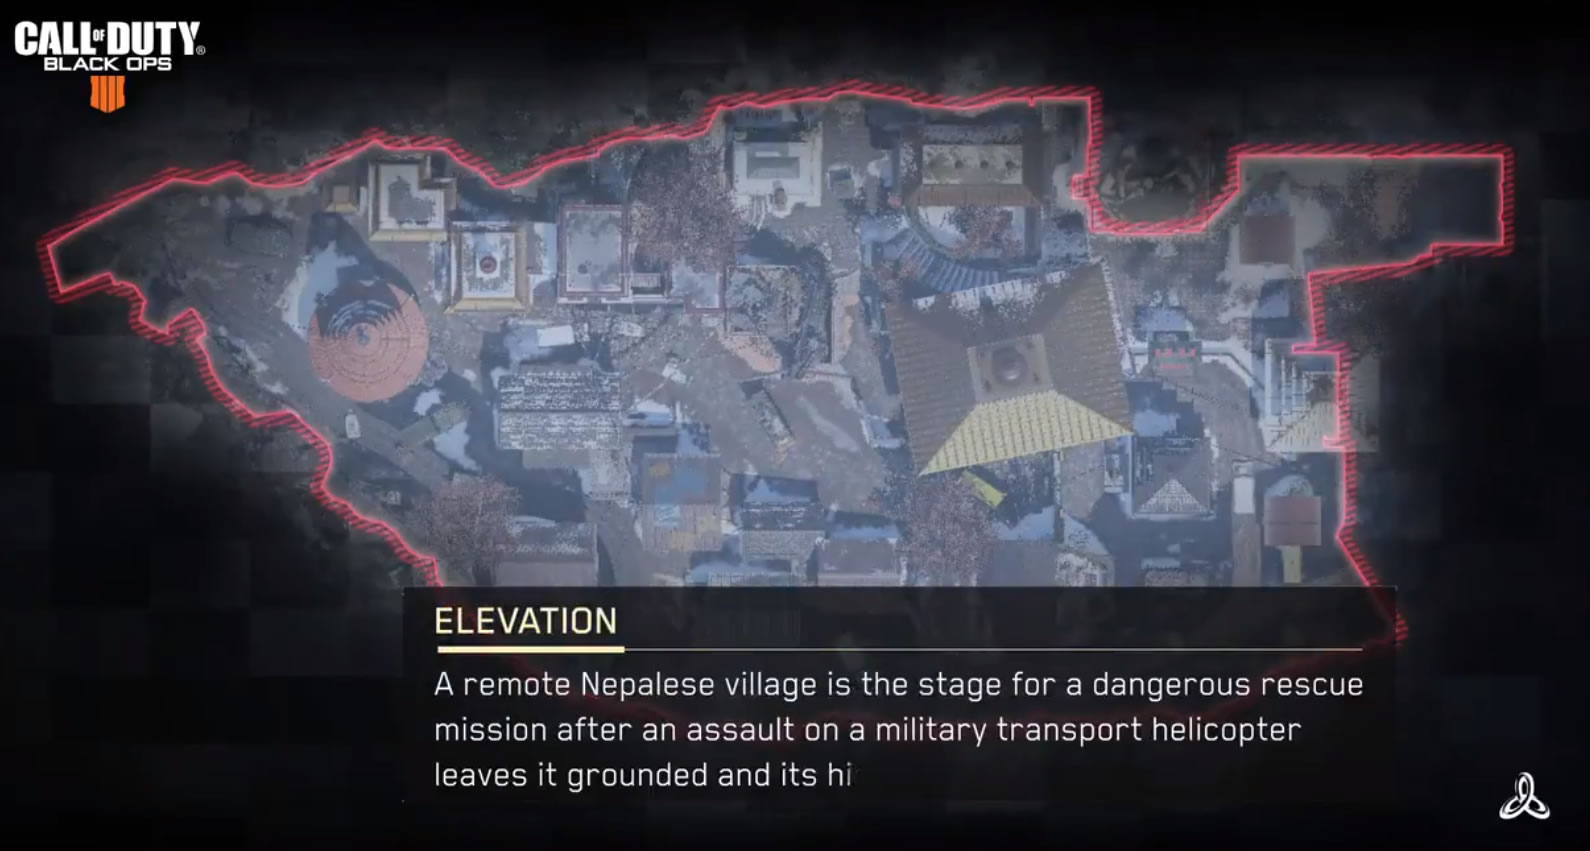 Black Ops 4 New Maps Released Elevation Madagascar Gameguidehq